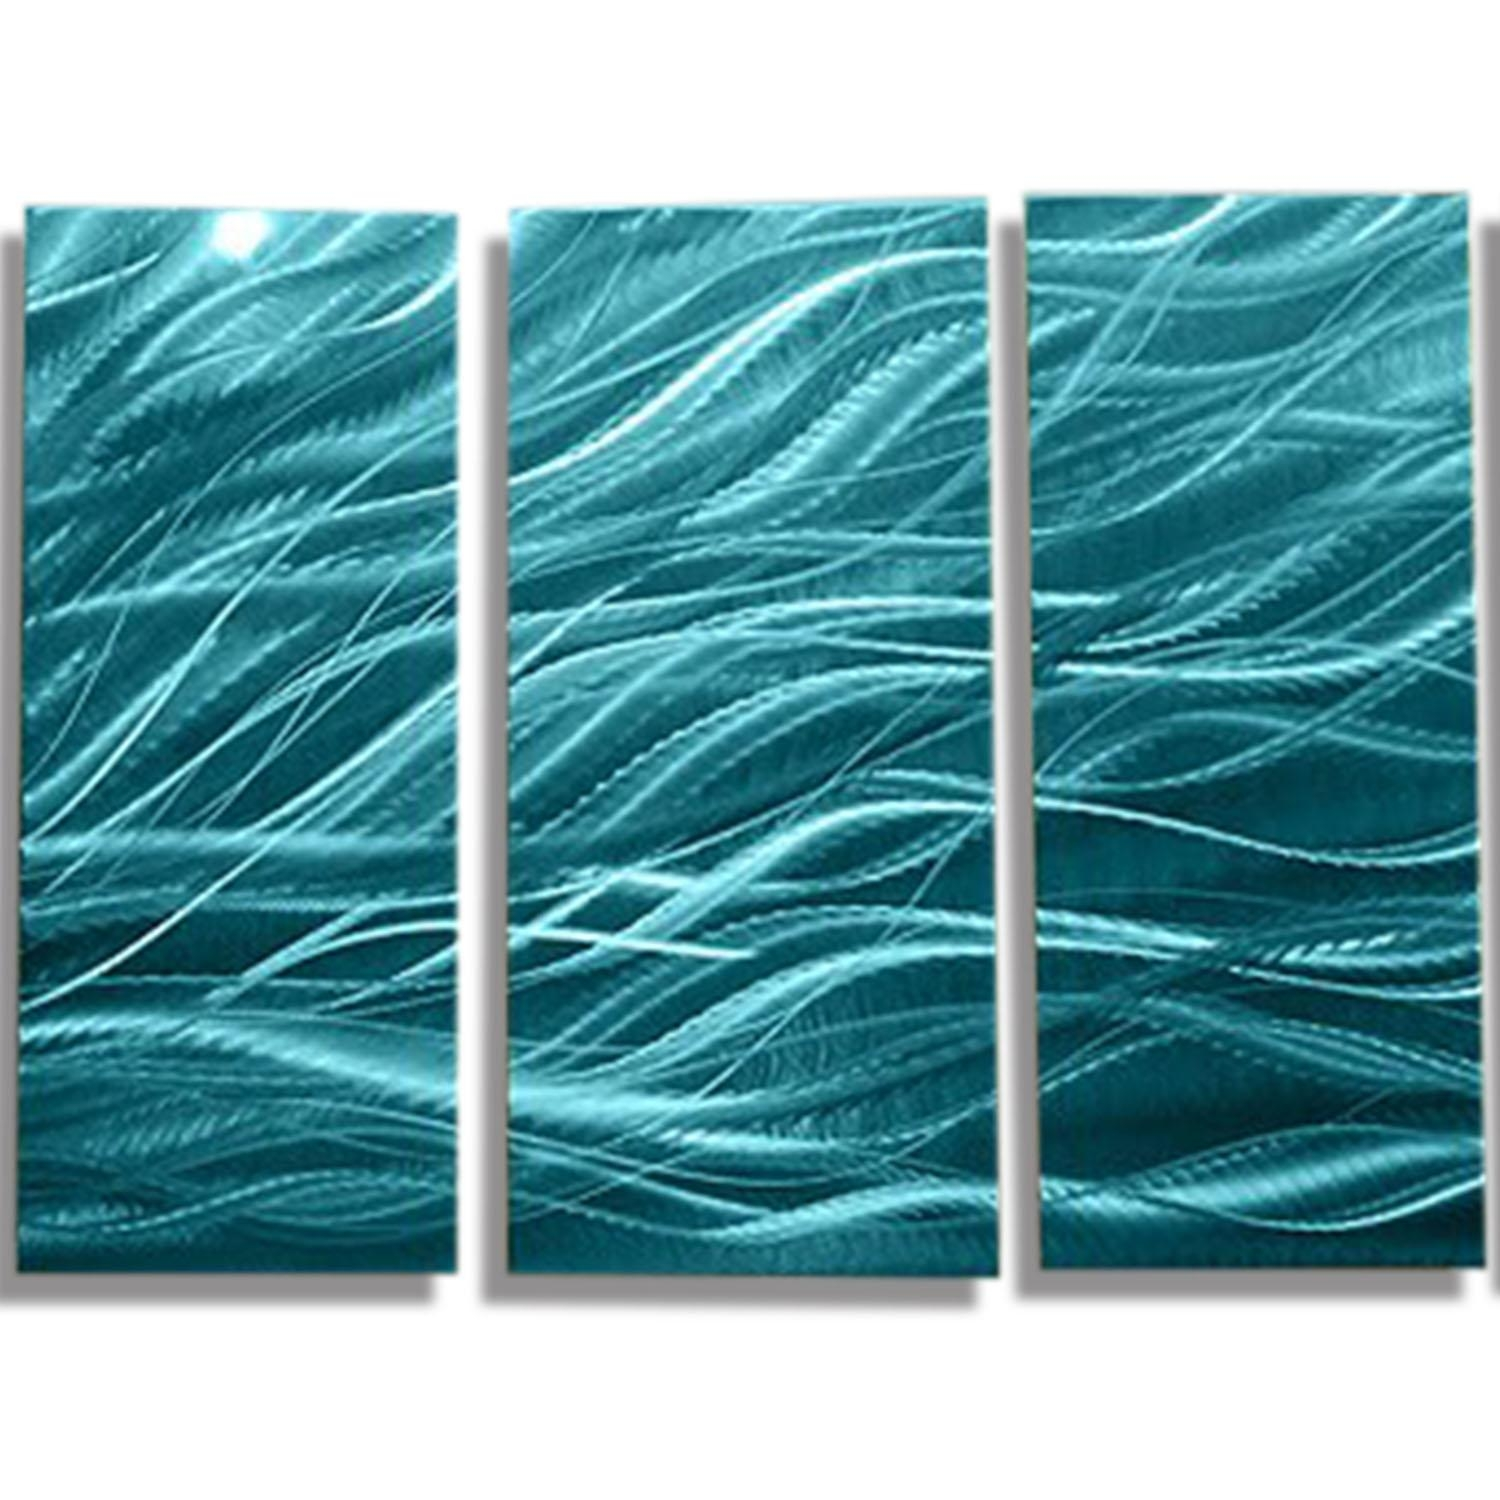 Rays Of Hope Aqua – Large Modern Abstract Metal Wall Artjon In Blue And Green Wall Art (View 18 of 20)